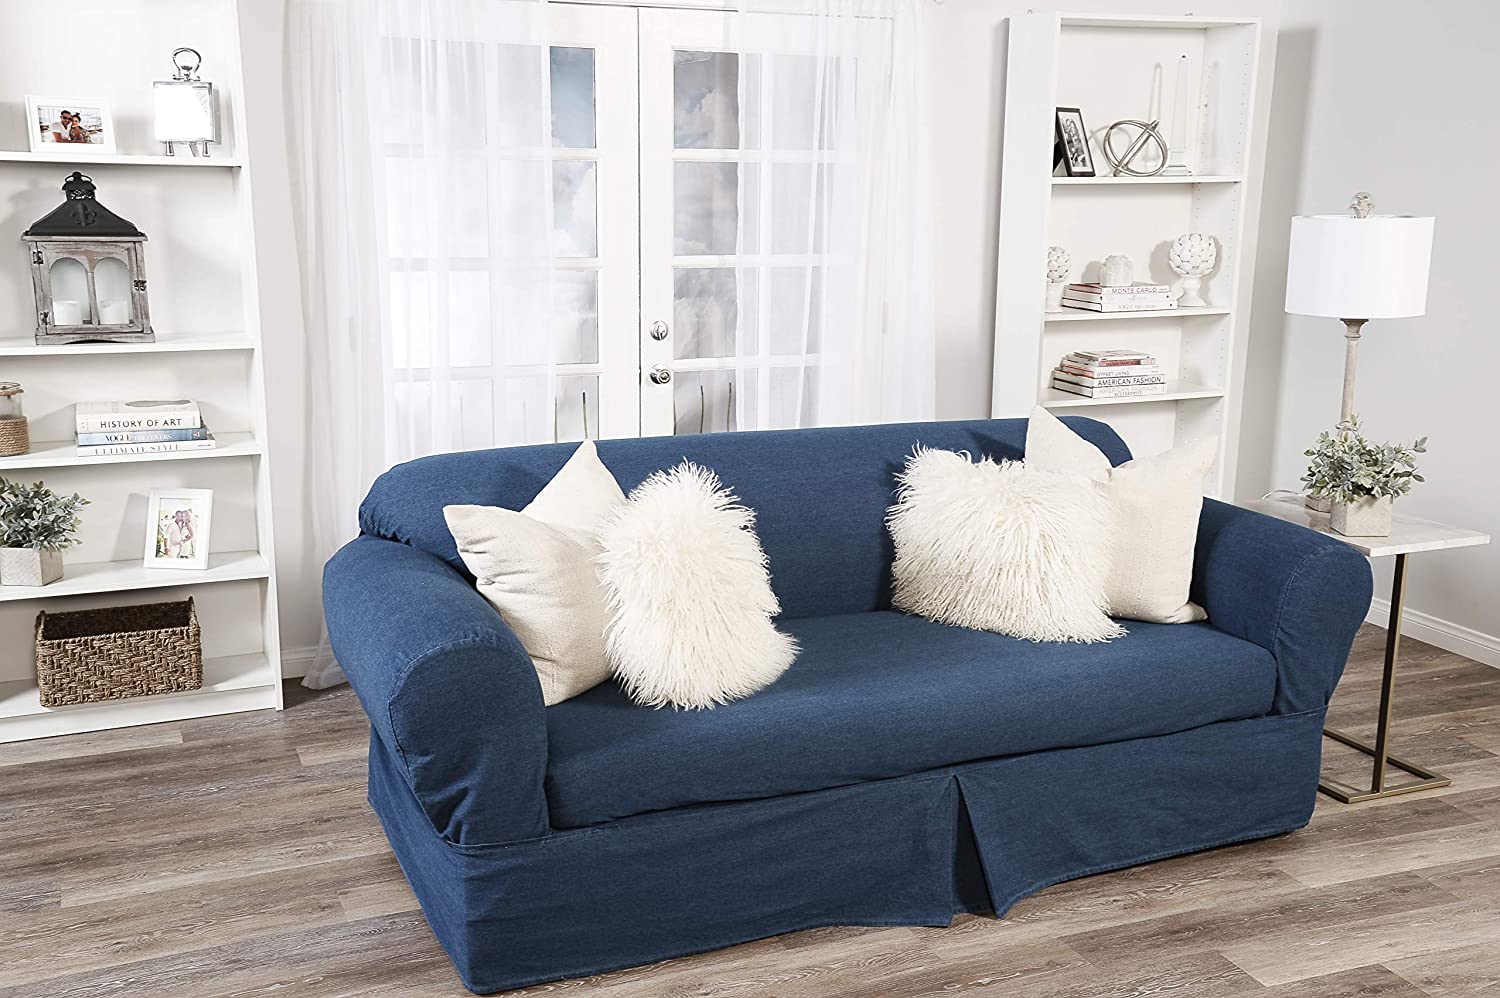 Magnificent 2 Piece Cotton Washed Heavy Denim Sofa Slipcover Blue Gmtry Best Dining Table And Chair Ideas Images Gmtryco